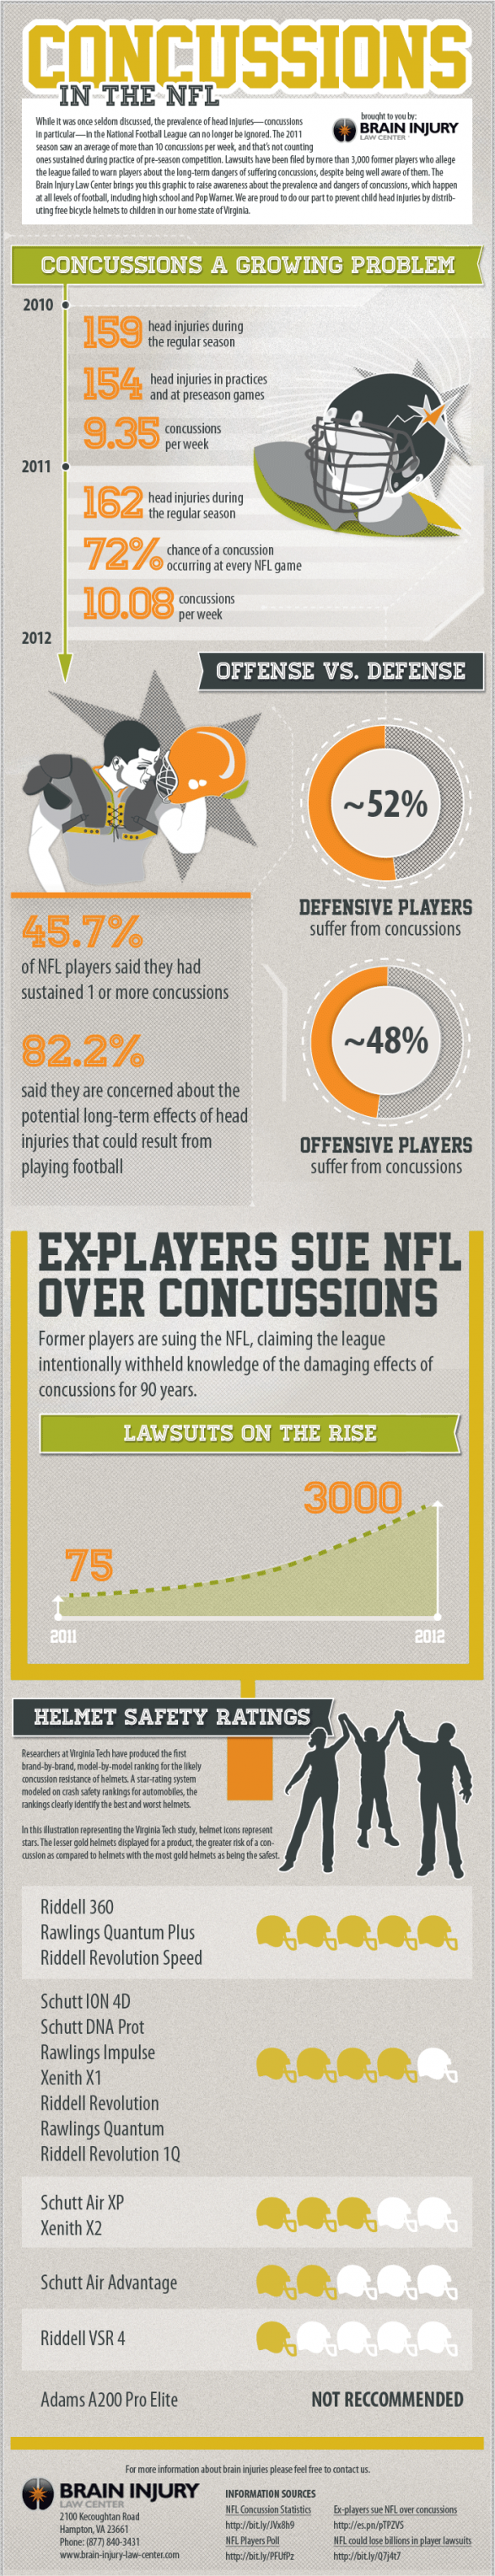 Brain Injury in the NFL